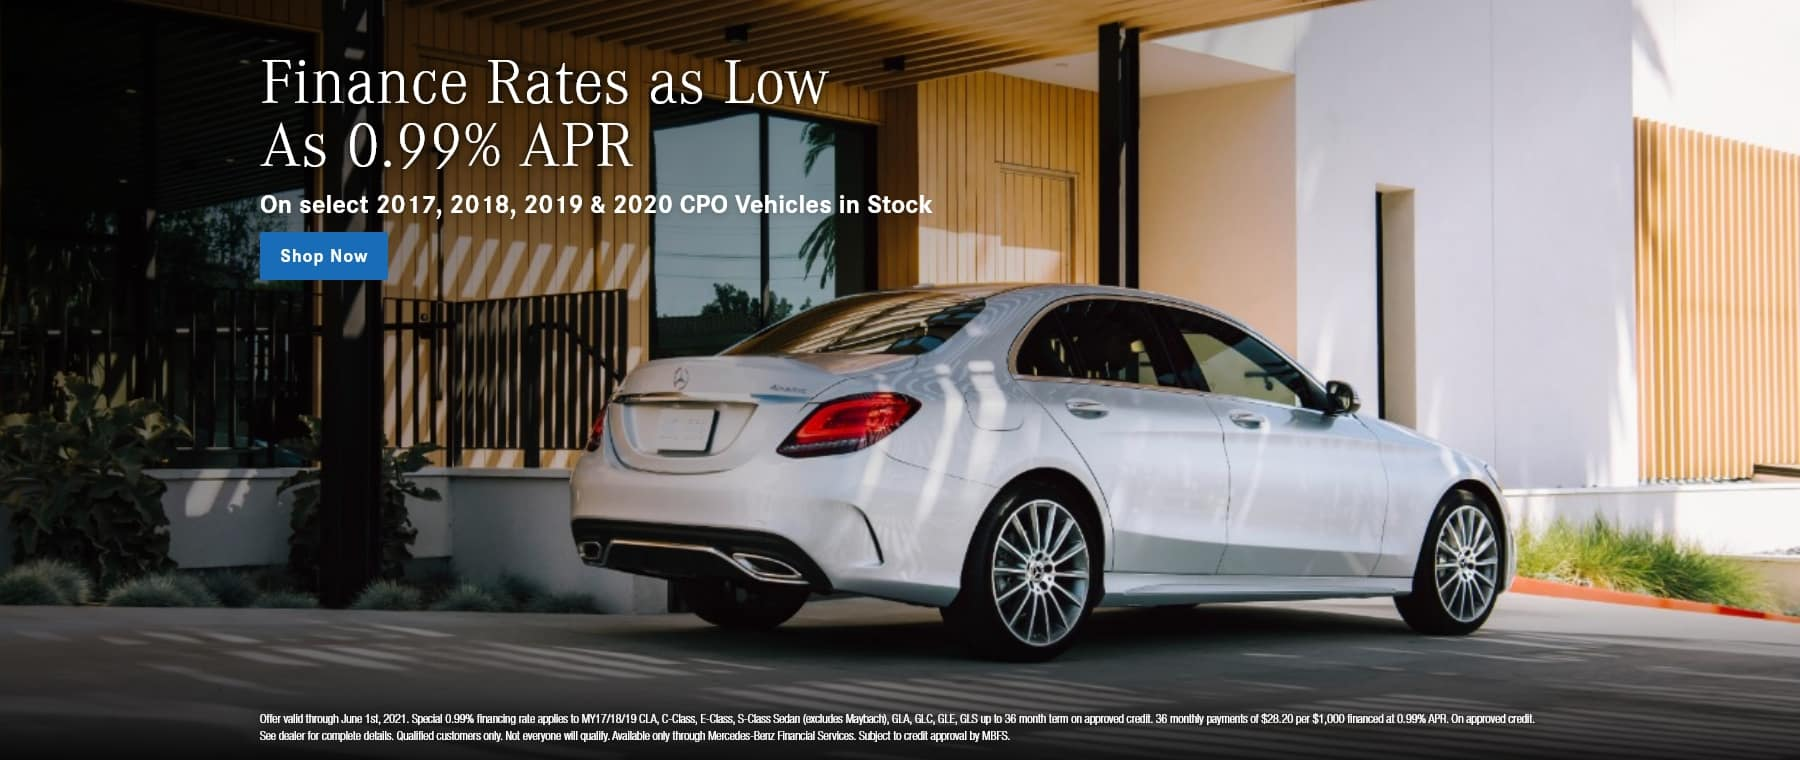 Rates as low as 0.99% APR